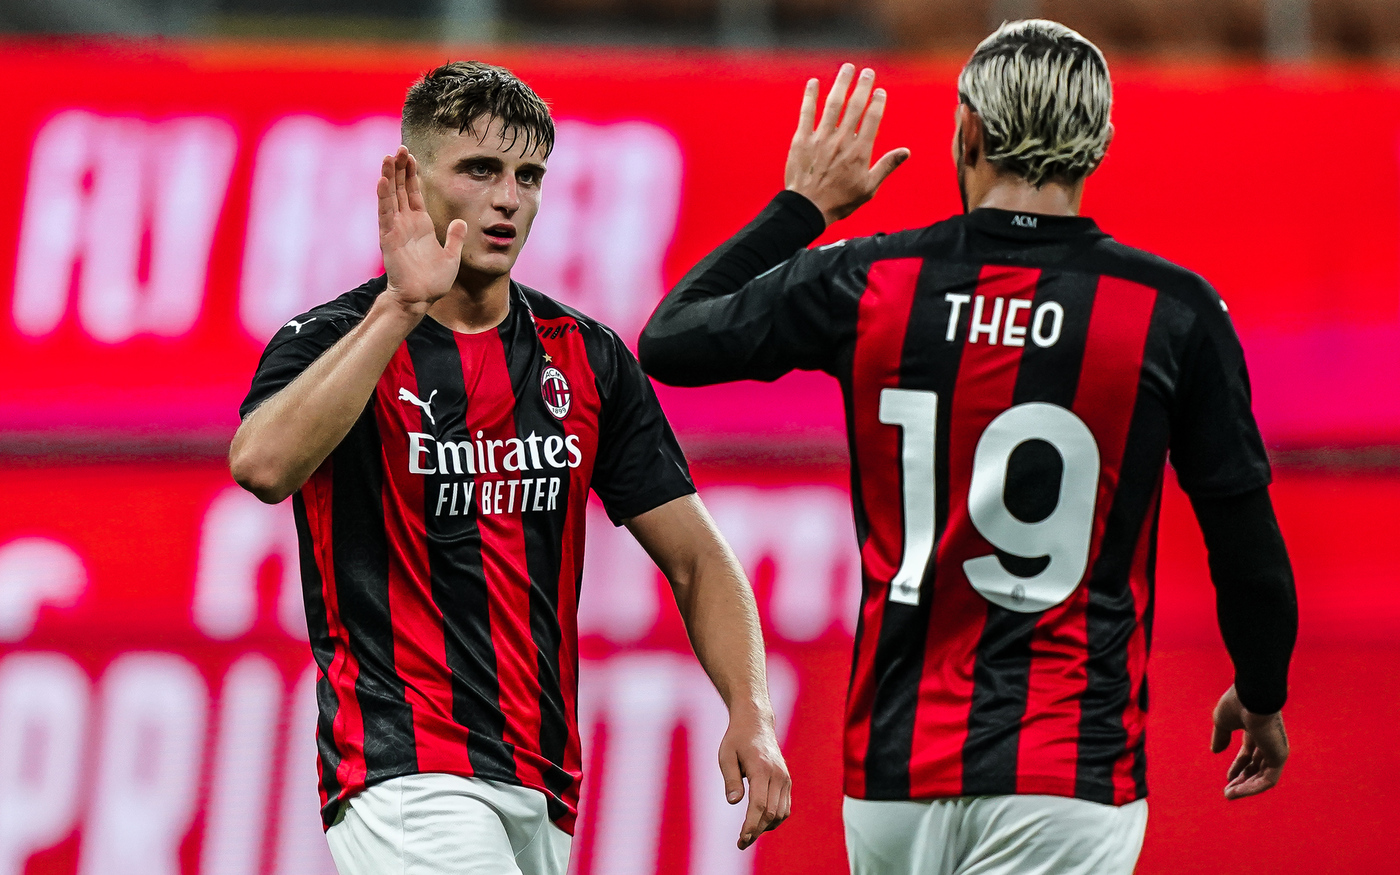 pronostico-rio-ave-milan-probabili-formazioni-quote-europa-league